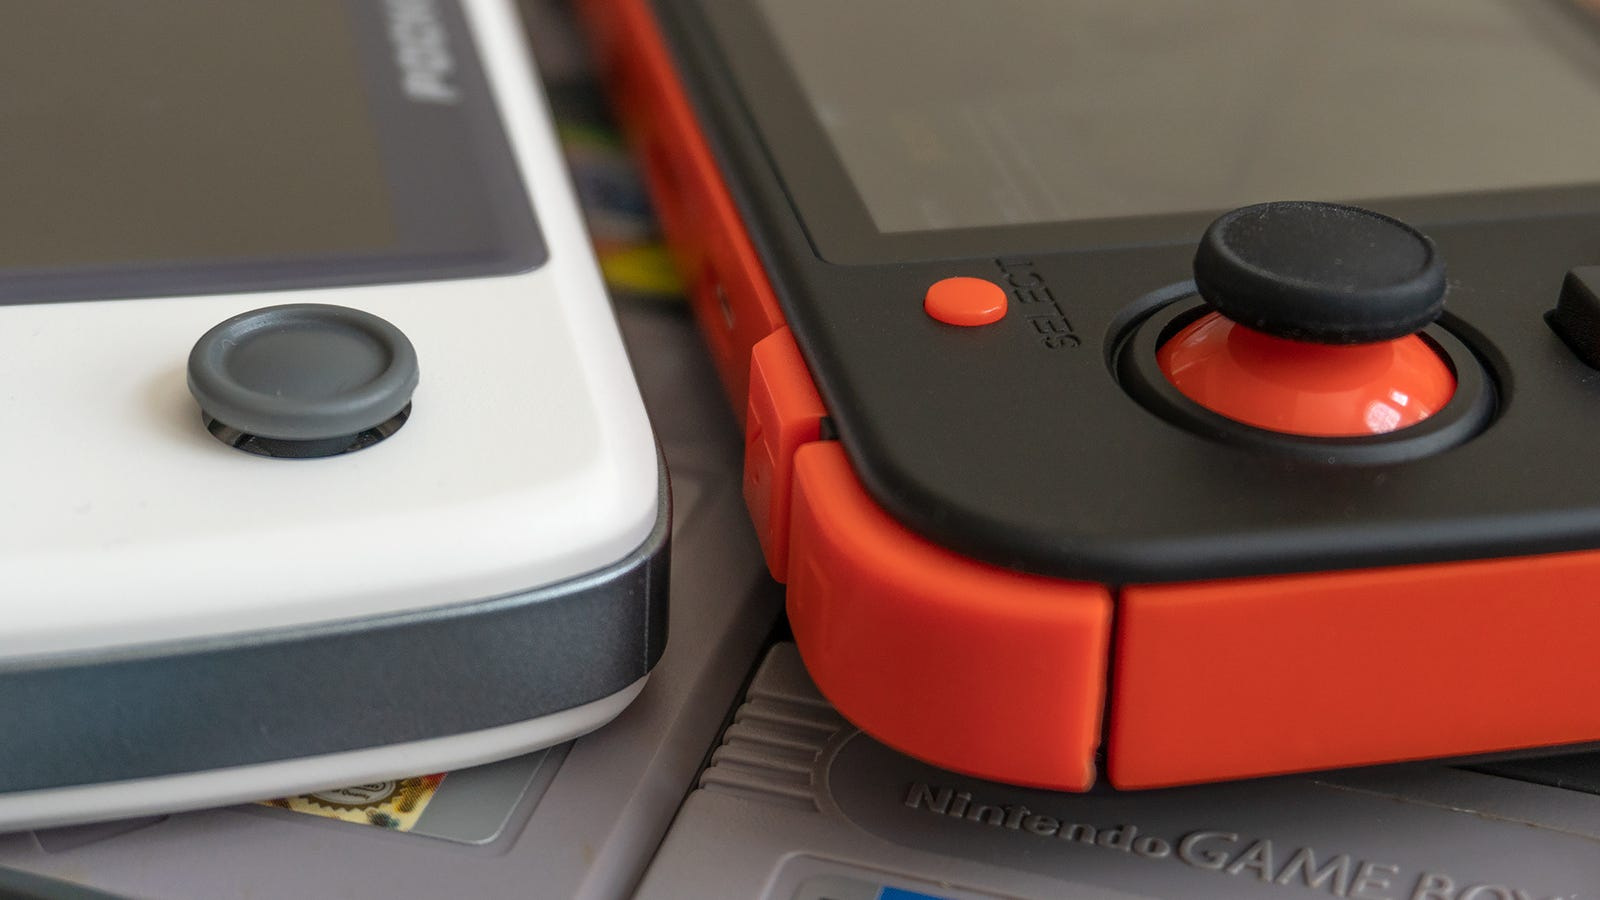 The New Pocket Go's analog joystick (left) was all but unusable, but the RG350's (right) are almost perfect.